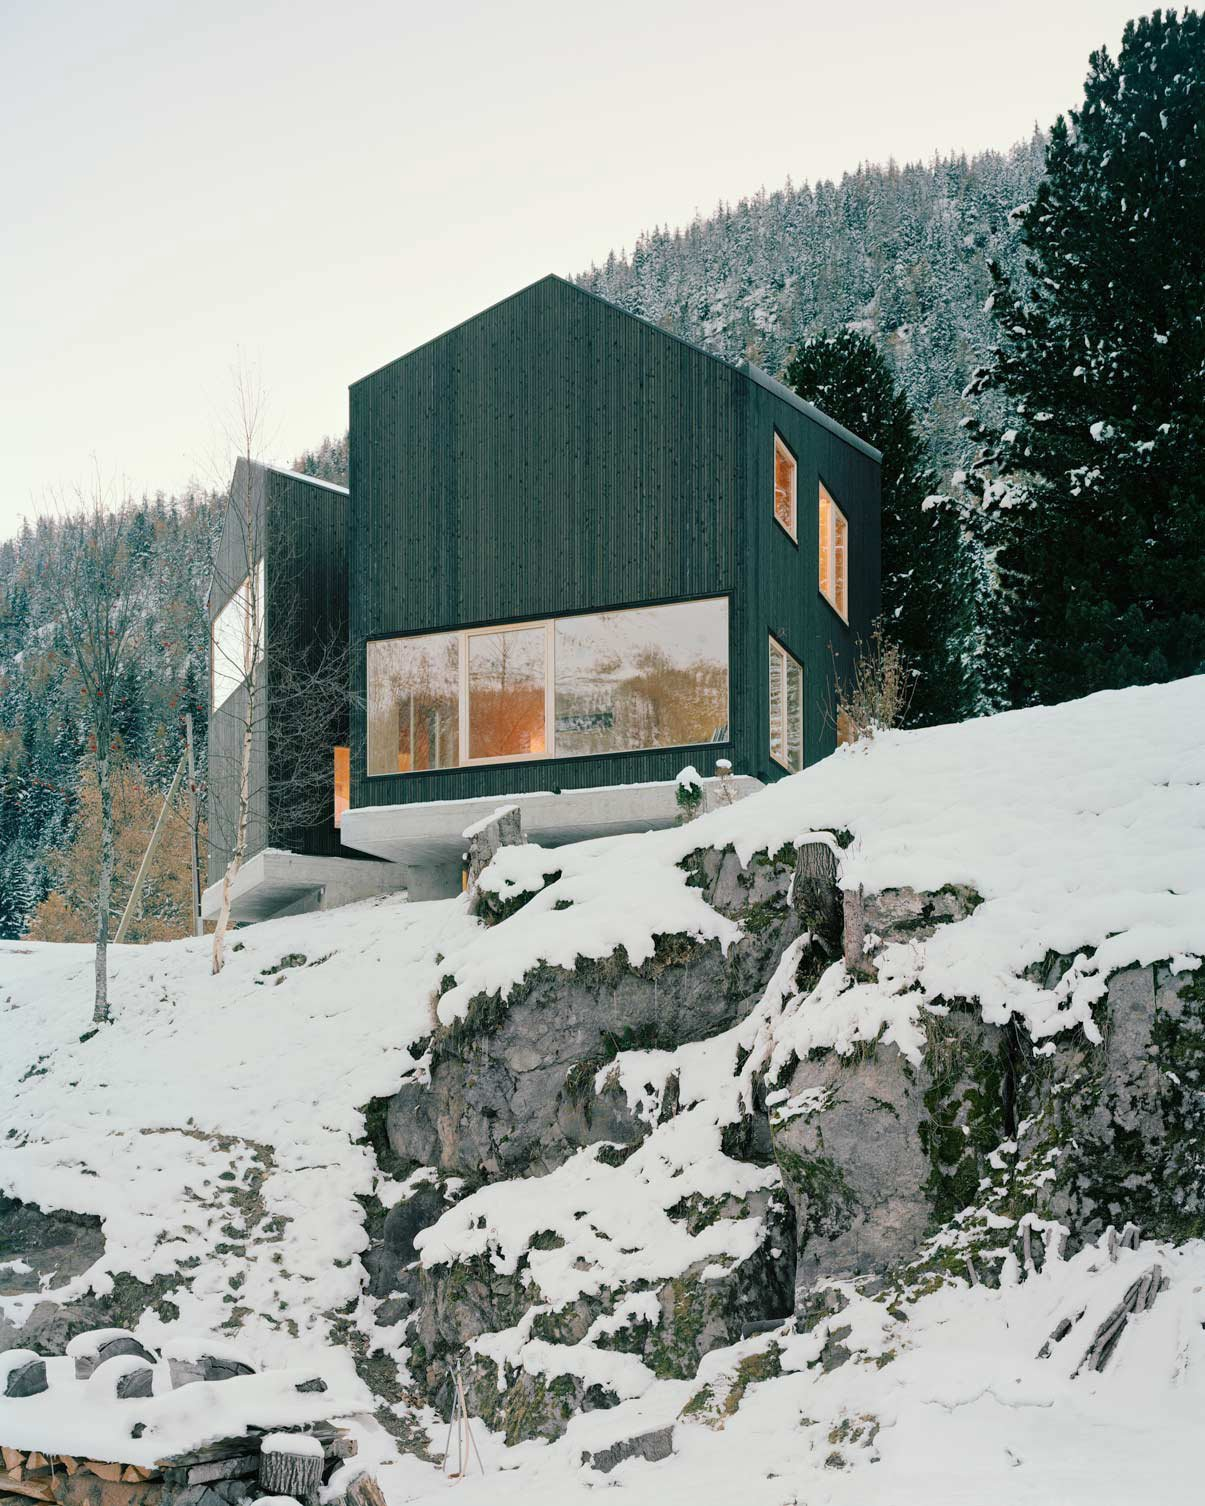 Lacroix Chessex Architectes realized La Maison aux Jeurs, a cabin in Les Jeurs, Switzerland situated on a rocky hill above the road. The structure is divided into two volumes that are angled 45 degrees apart with a connection on the mountain side. Both volumes are designed with different views of the valley below. 10 Modern Wintry Cabins We'd Be Happy to Hole Up In - Photo 11 of 11